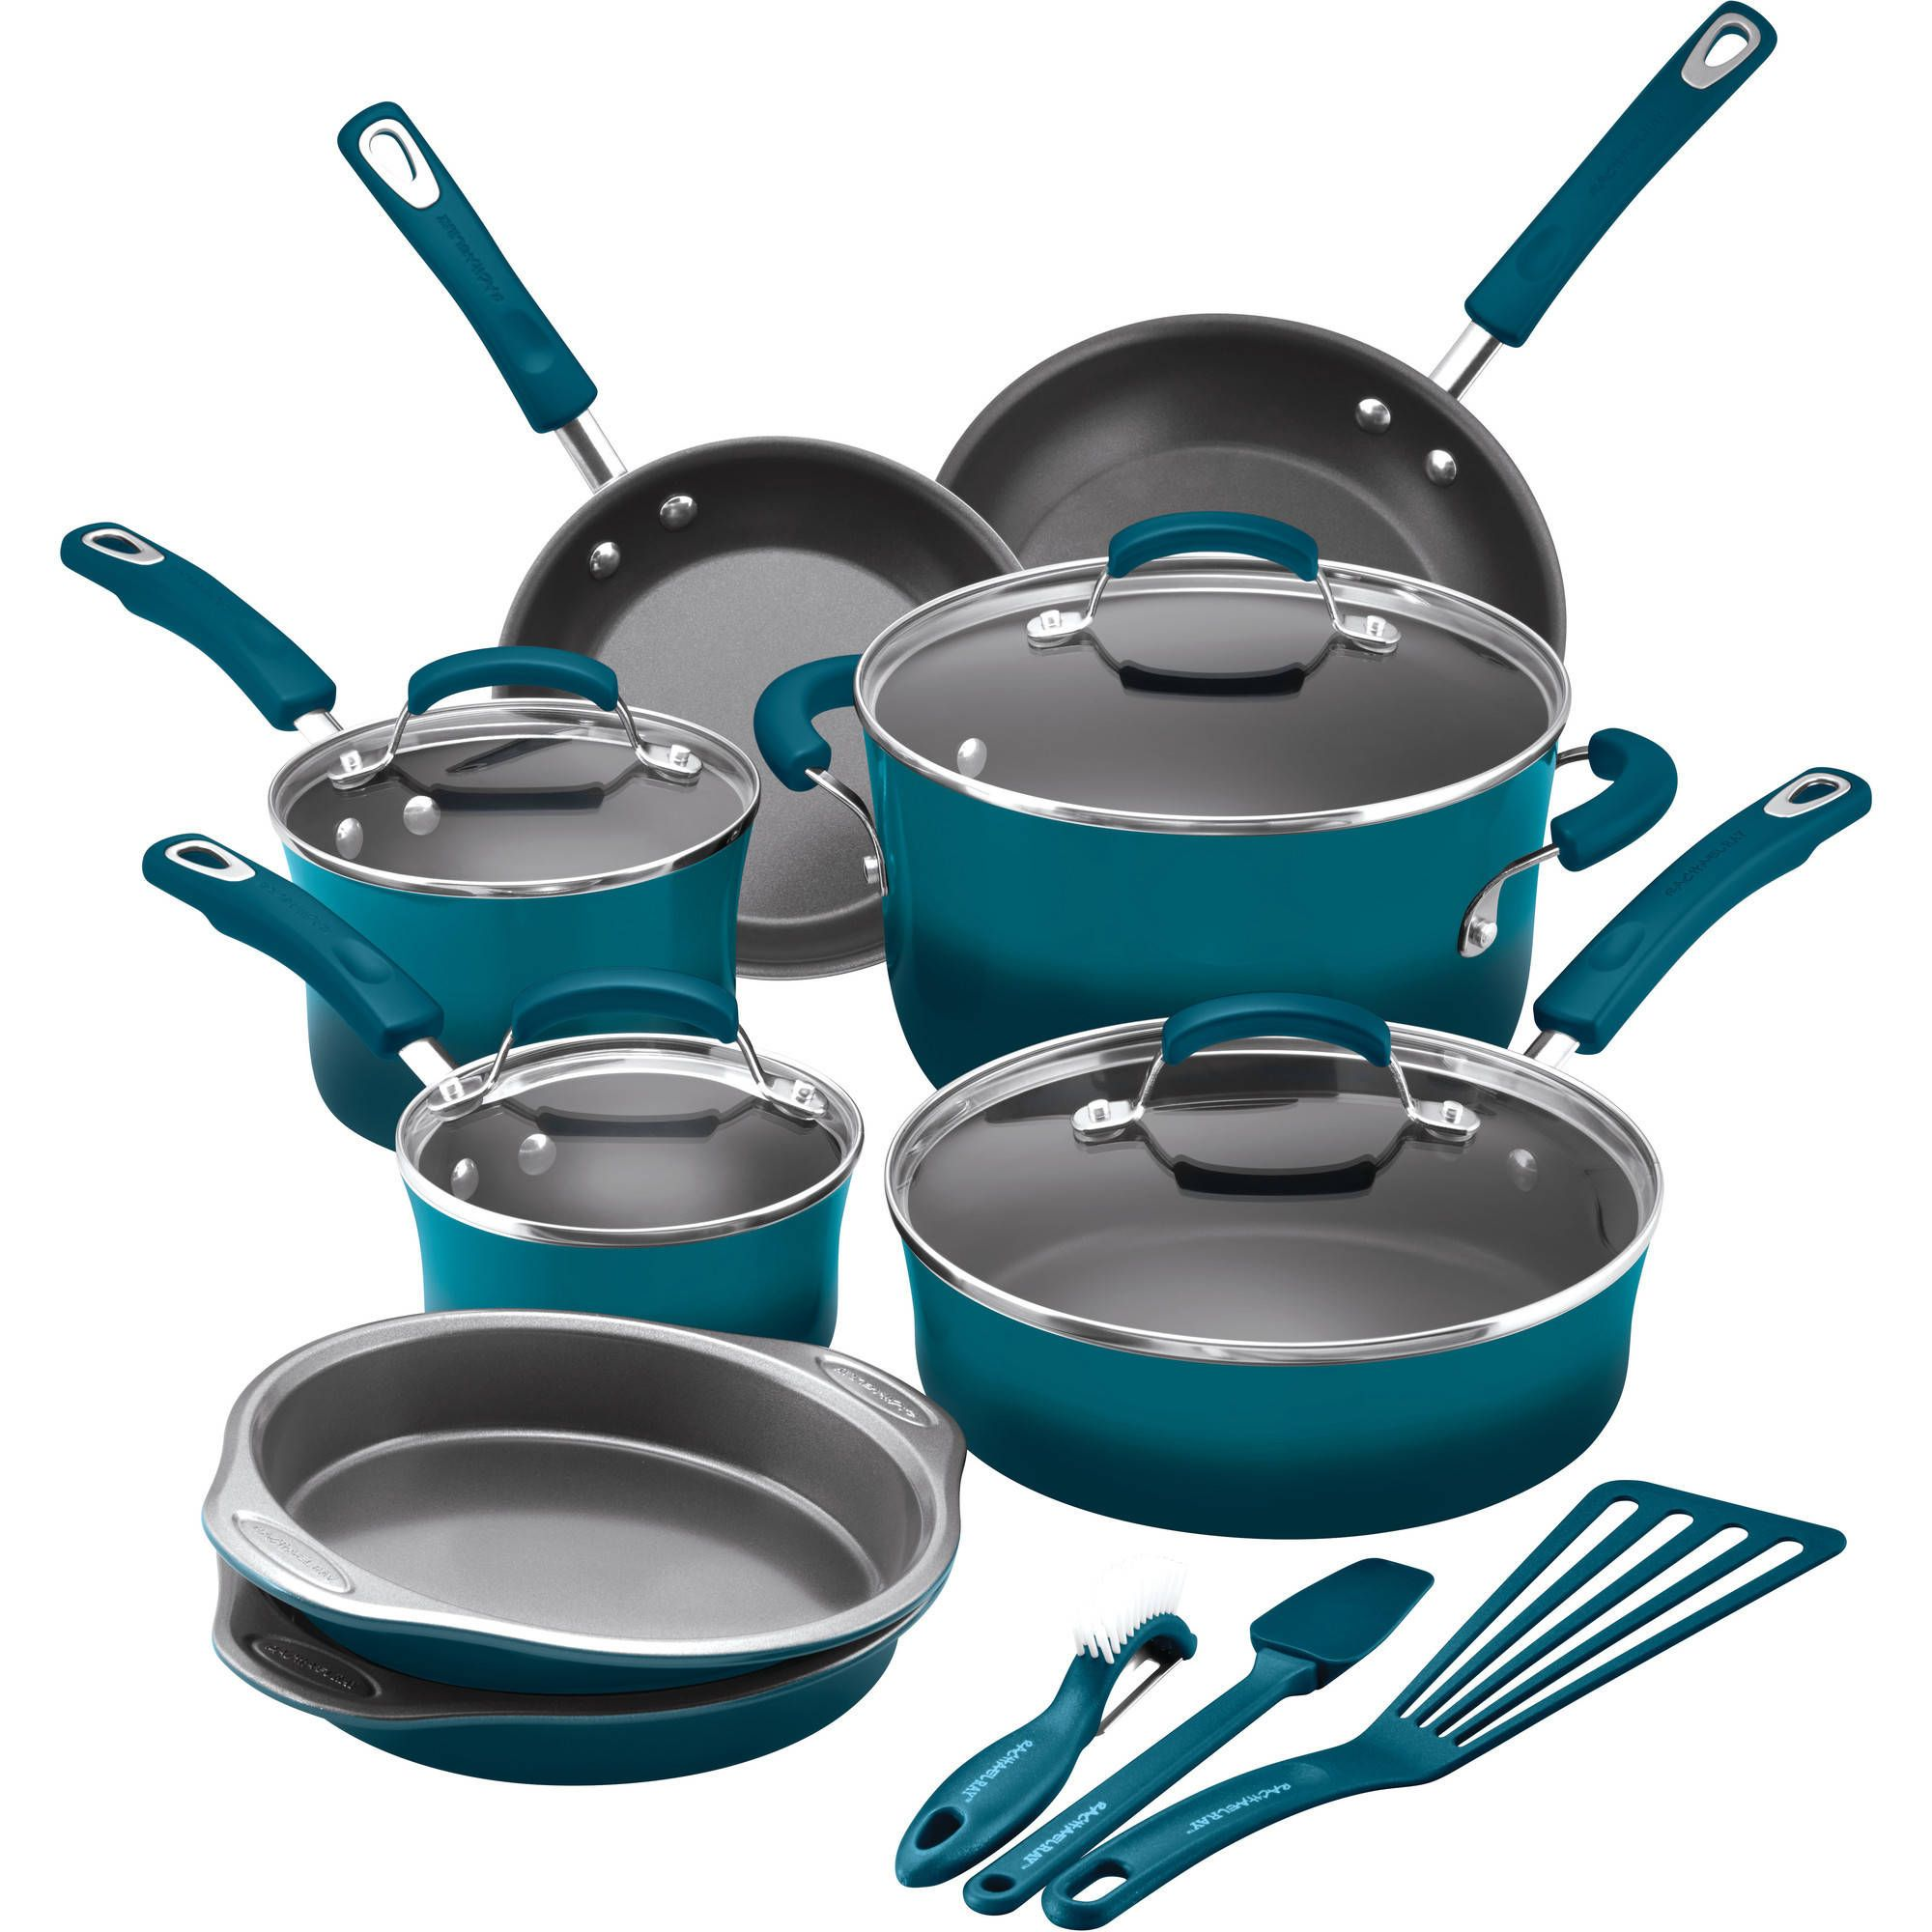 Rachael Ray 15 Piece Hard Enamel Nonstick Cookware Set   Walmart.com